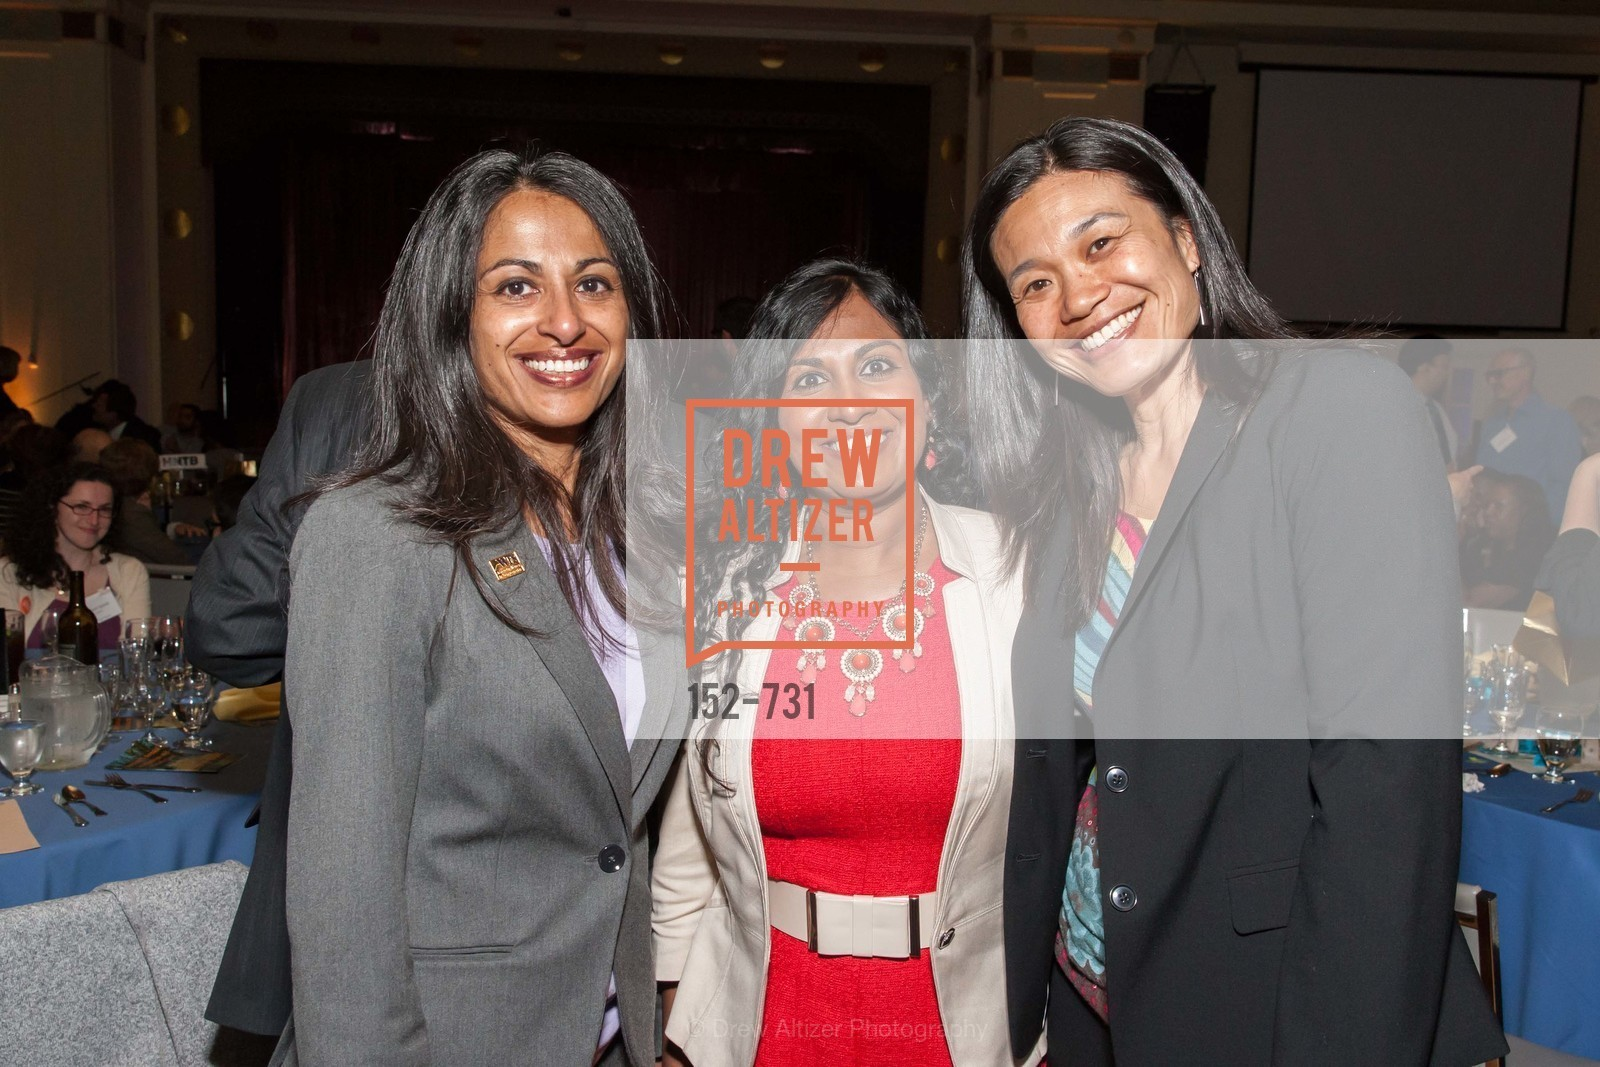 Charissa Frank, Sajeena, Camille Tsao, WOMEN'S TRANSPORTATION SEMINAR SF Bay Area Chapter Annual Scholarship Awards, US, May 15th, 2015,Drew Altizer, Drew Altizer Photography, full-service agency, private events, San Francisco photographer, photographer california